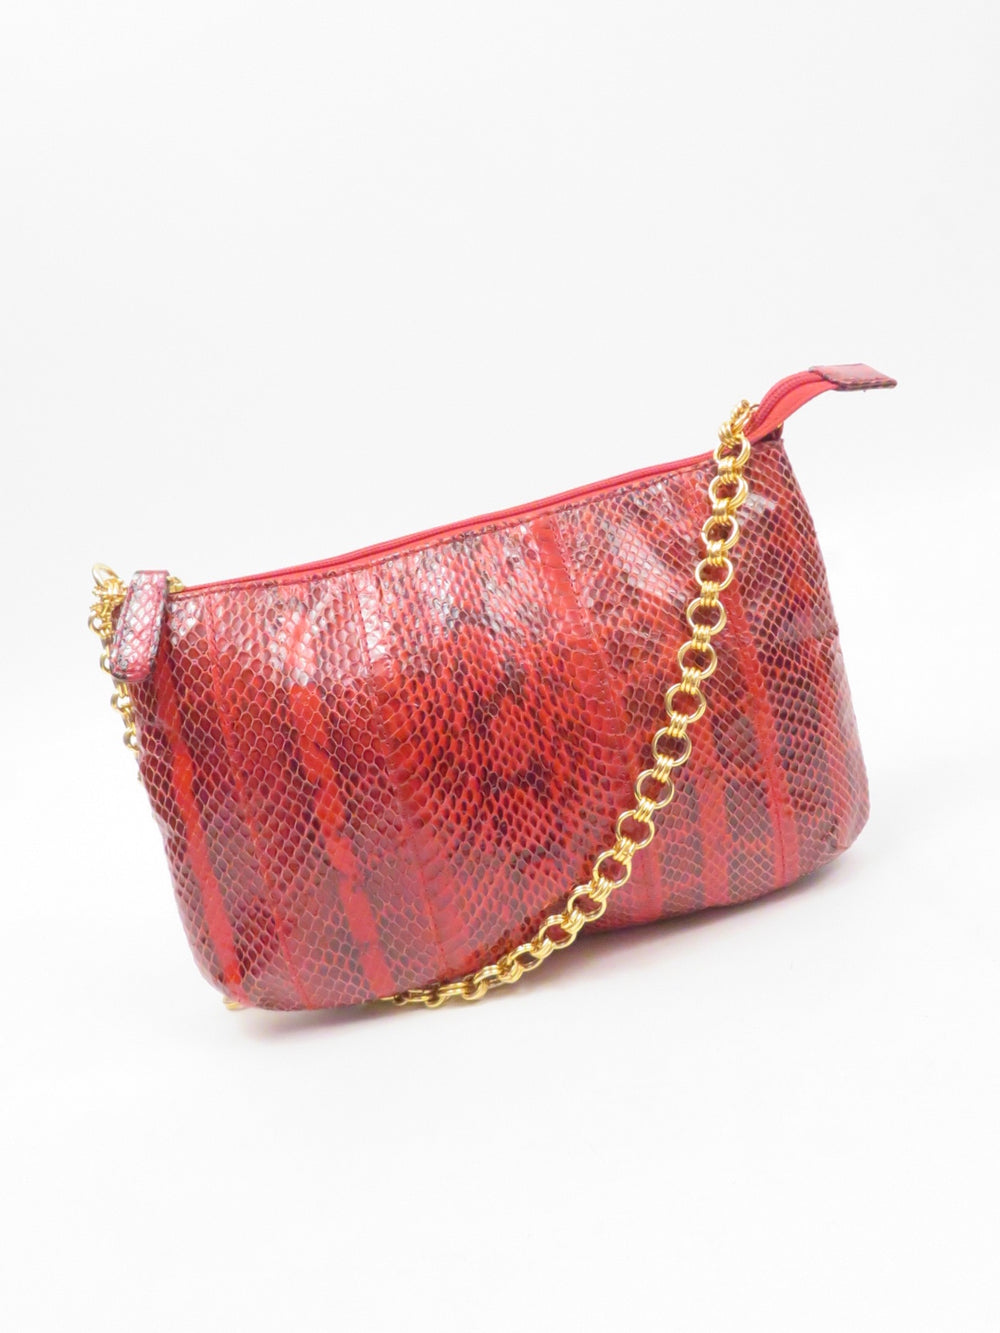 bloomingdales red snakeskin bag. features paneled snakeskin outer and gold chain strap. lined.